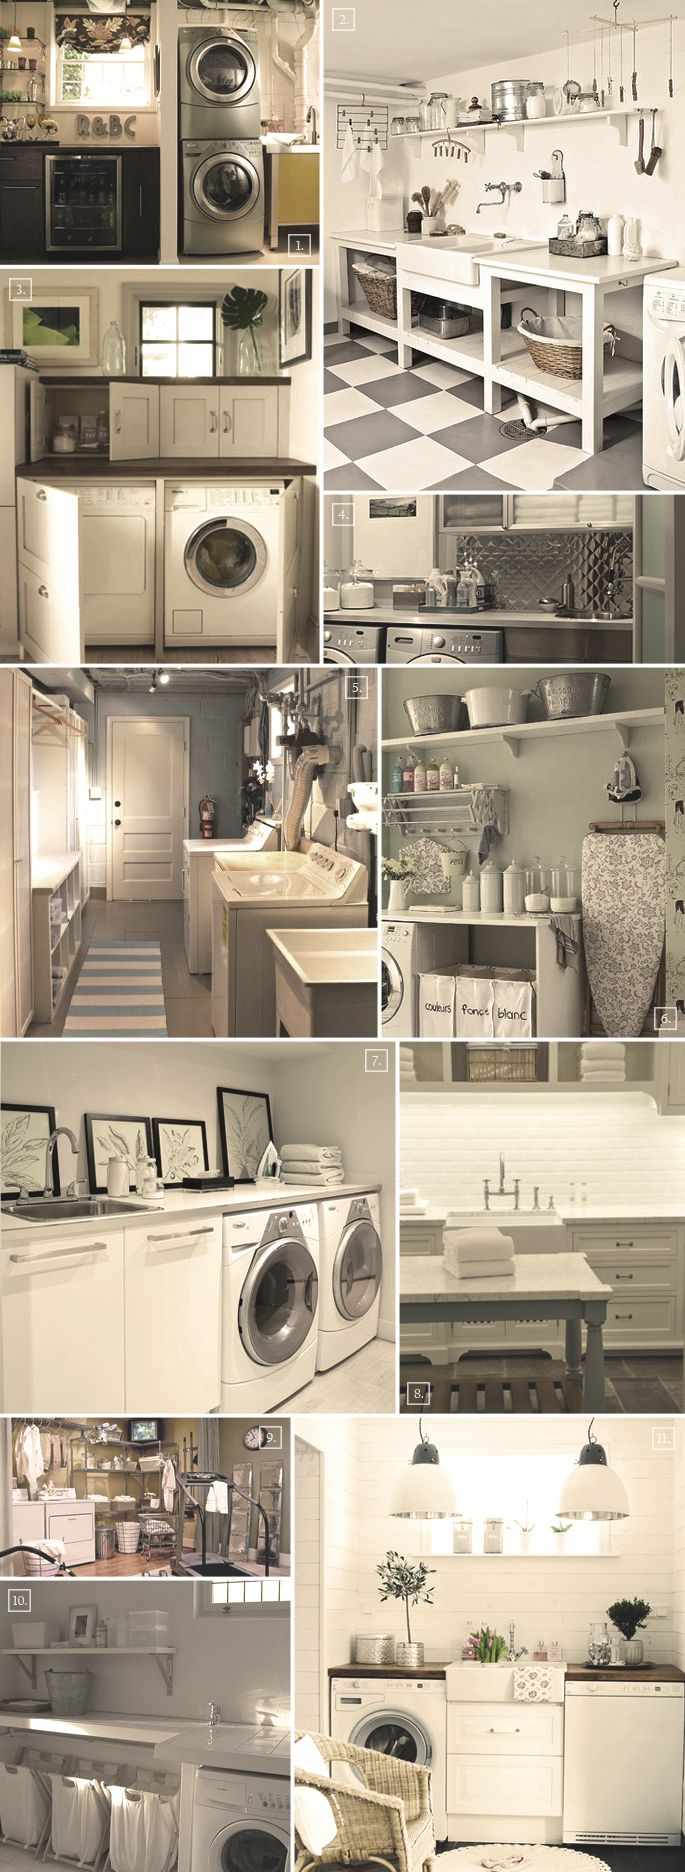 design ideas for that perfect basement laundry room Pinterest Laundry Room Decor Small Laundry Room Ideas